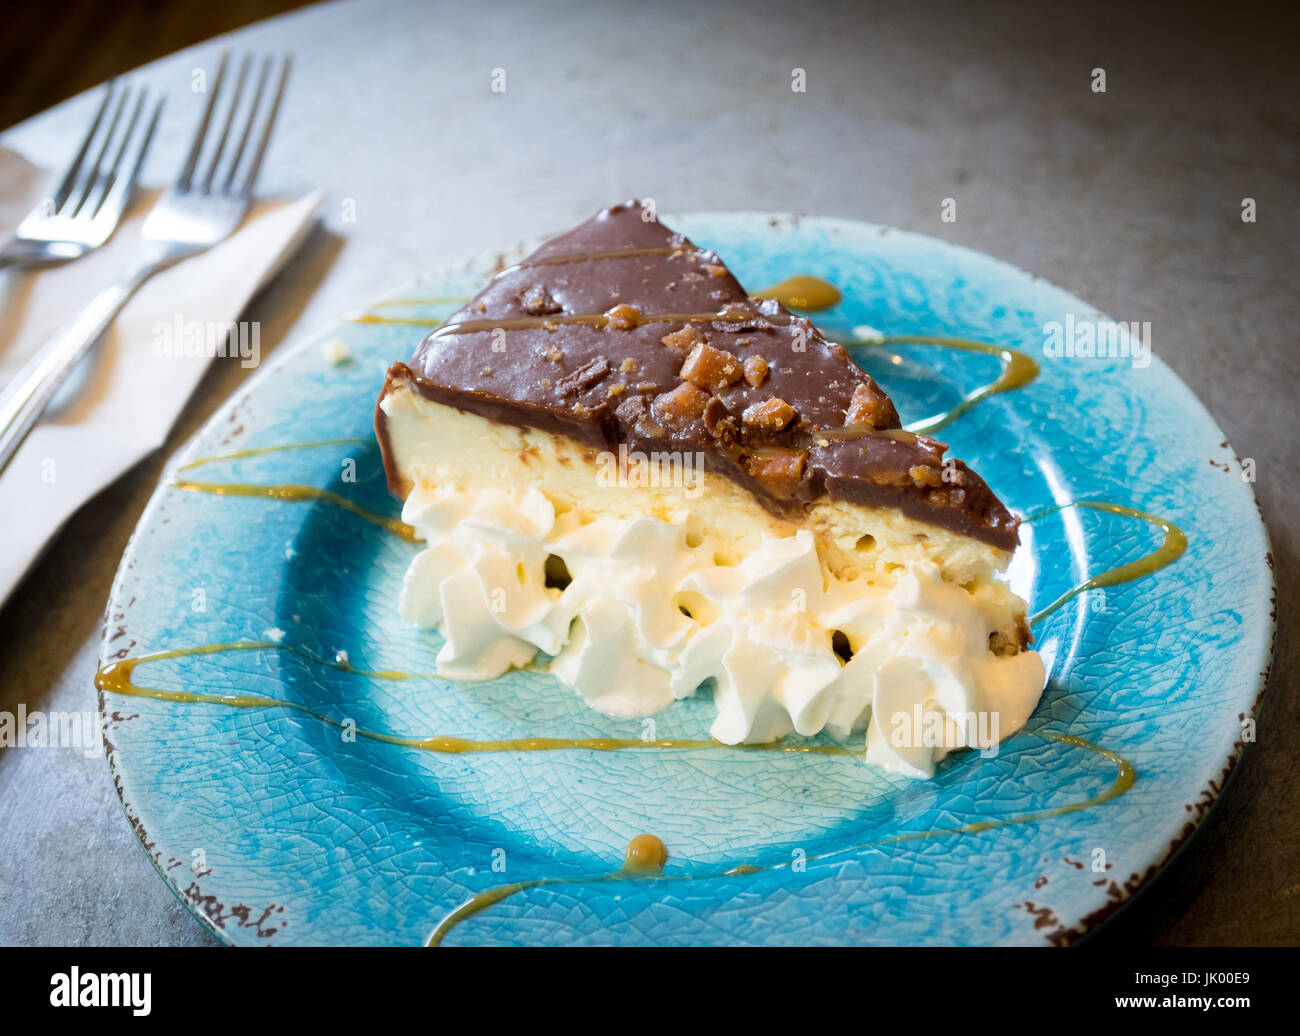 A decadent slice of s'mores cheescake from D'Lish by Tish Cafe in Saskatoon, Saskatchewan, Canada. - Stock Image